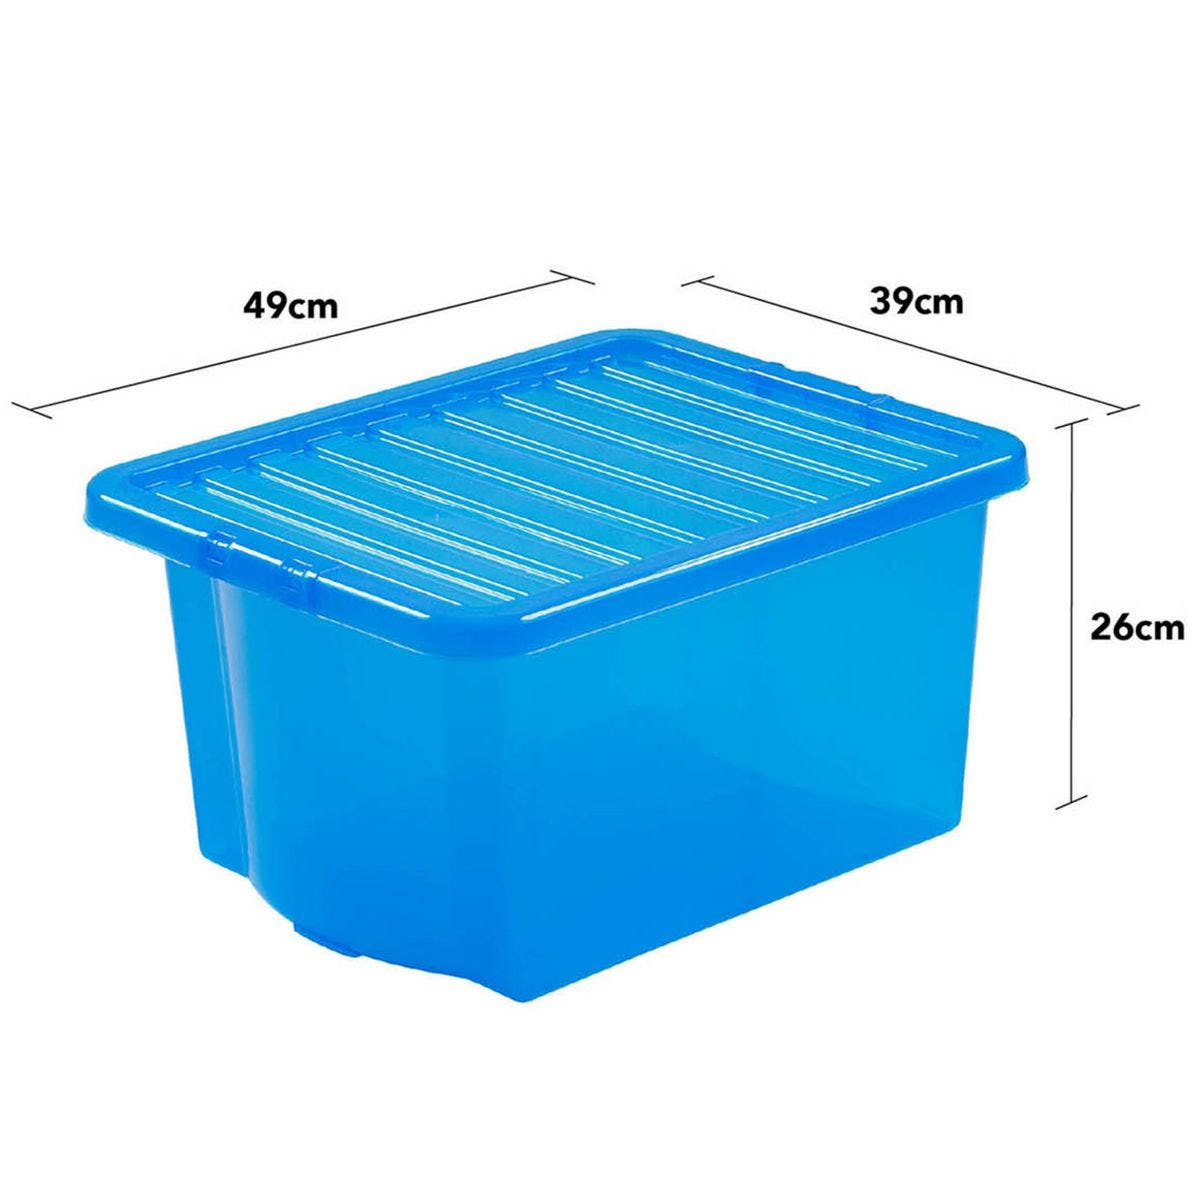 Wham Crystal Blue Storage Box with Lid 35L - Set of 5